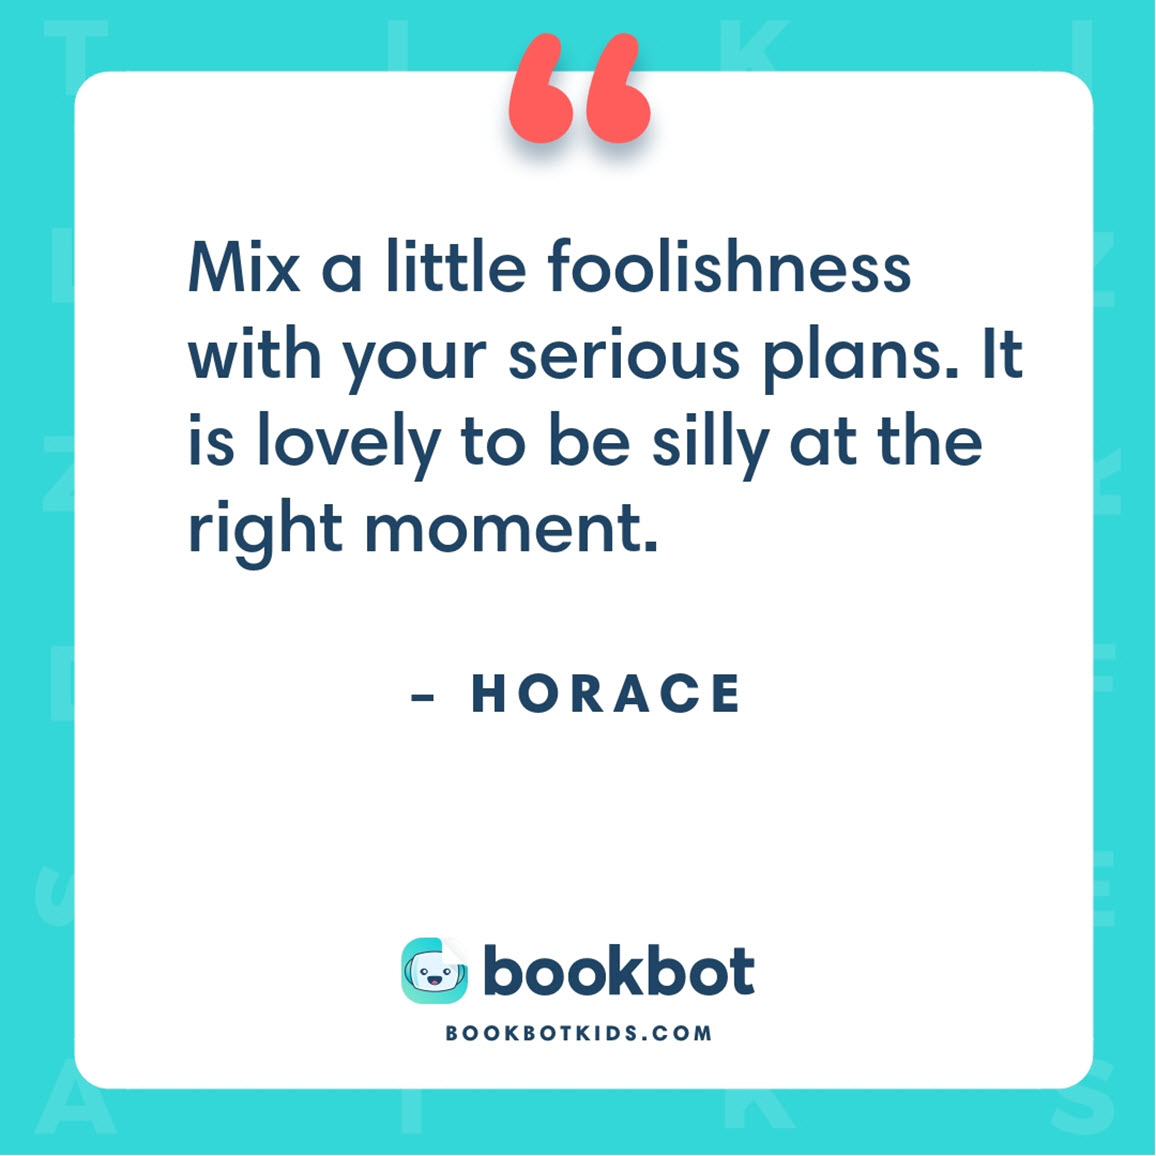 Mix a little foolishness with your serious plans. It is lovely to be silly at the right moment. – Horace